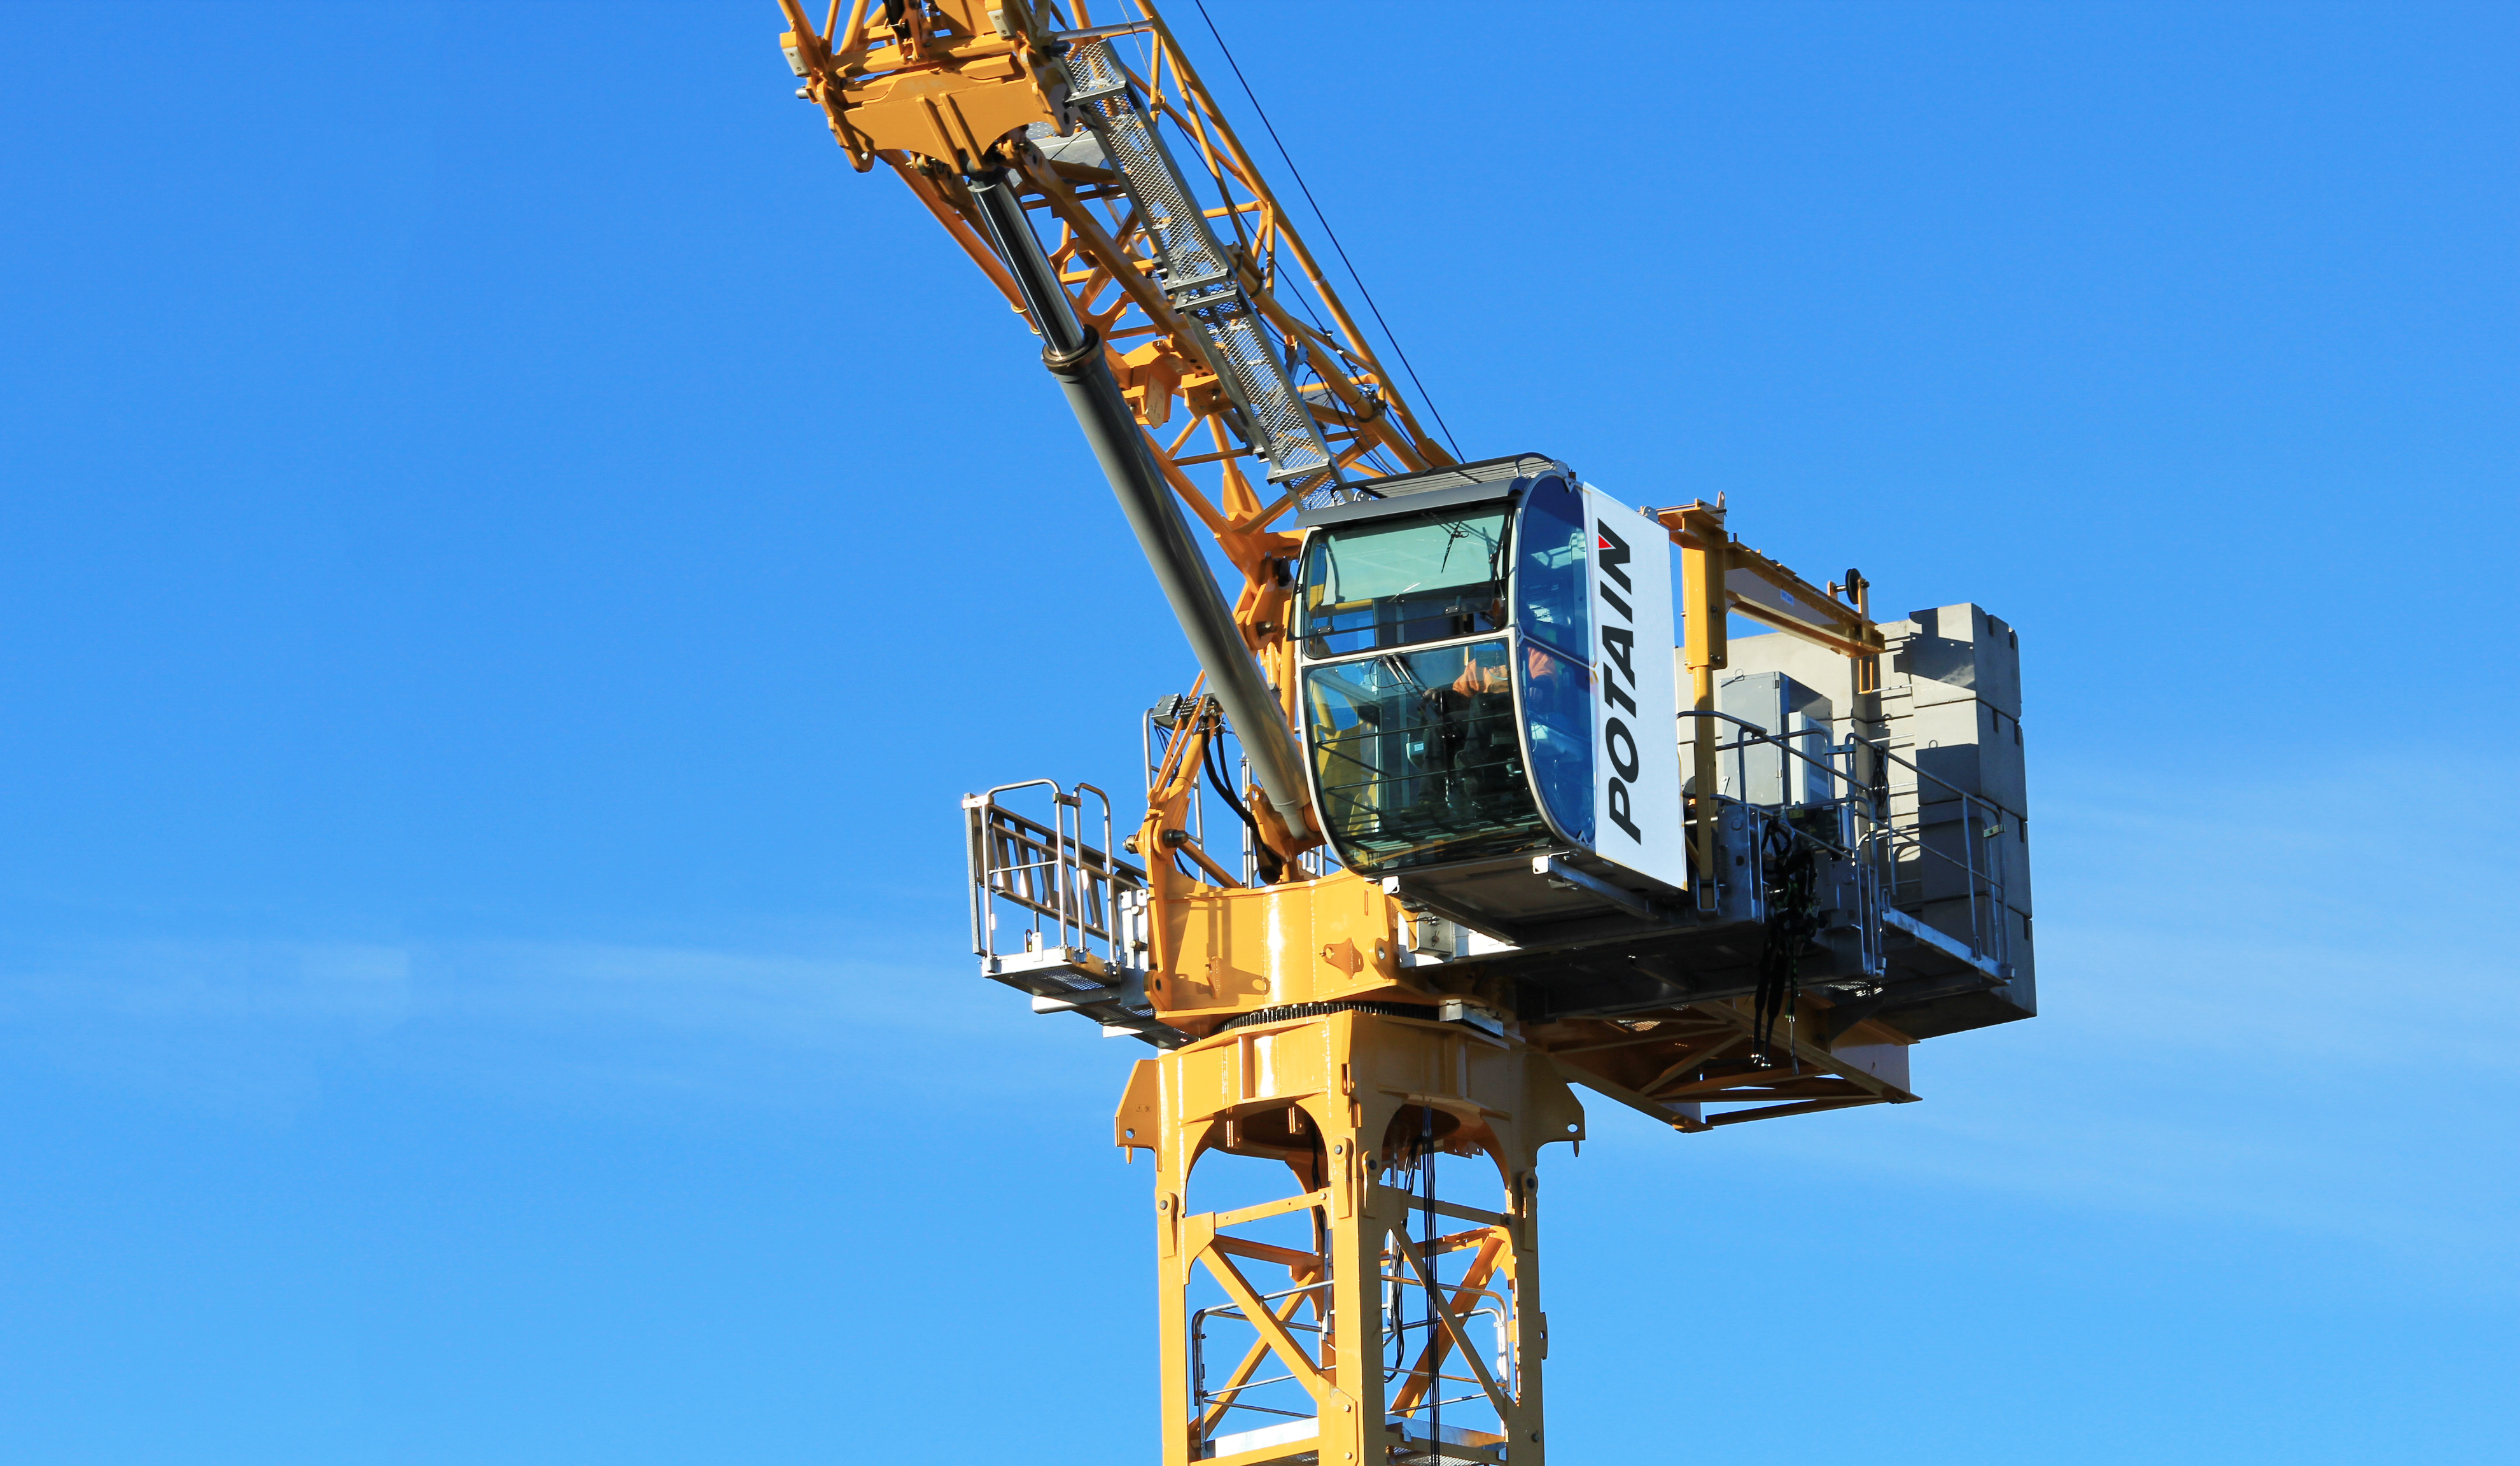 The all-new Potain MCH 125 has launched, the company's first hydraulic topless luffing jib crane. Having previewed as a prototype at bauma China 2016 in Shanghai, the first units have since been tested on site with select dealers in Thailand, Australia and New Zealand ahead of the crane's launch into several international markets. It is the first topless luffing jib model from Potain and its unique hydraulic technology makes it easier to assemble and faster to operate.